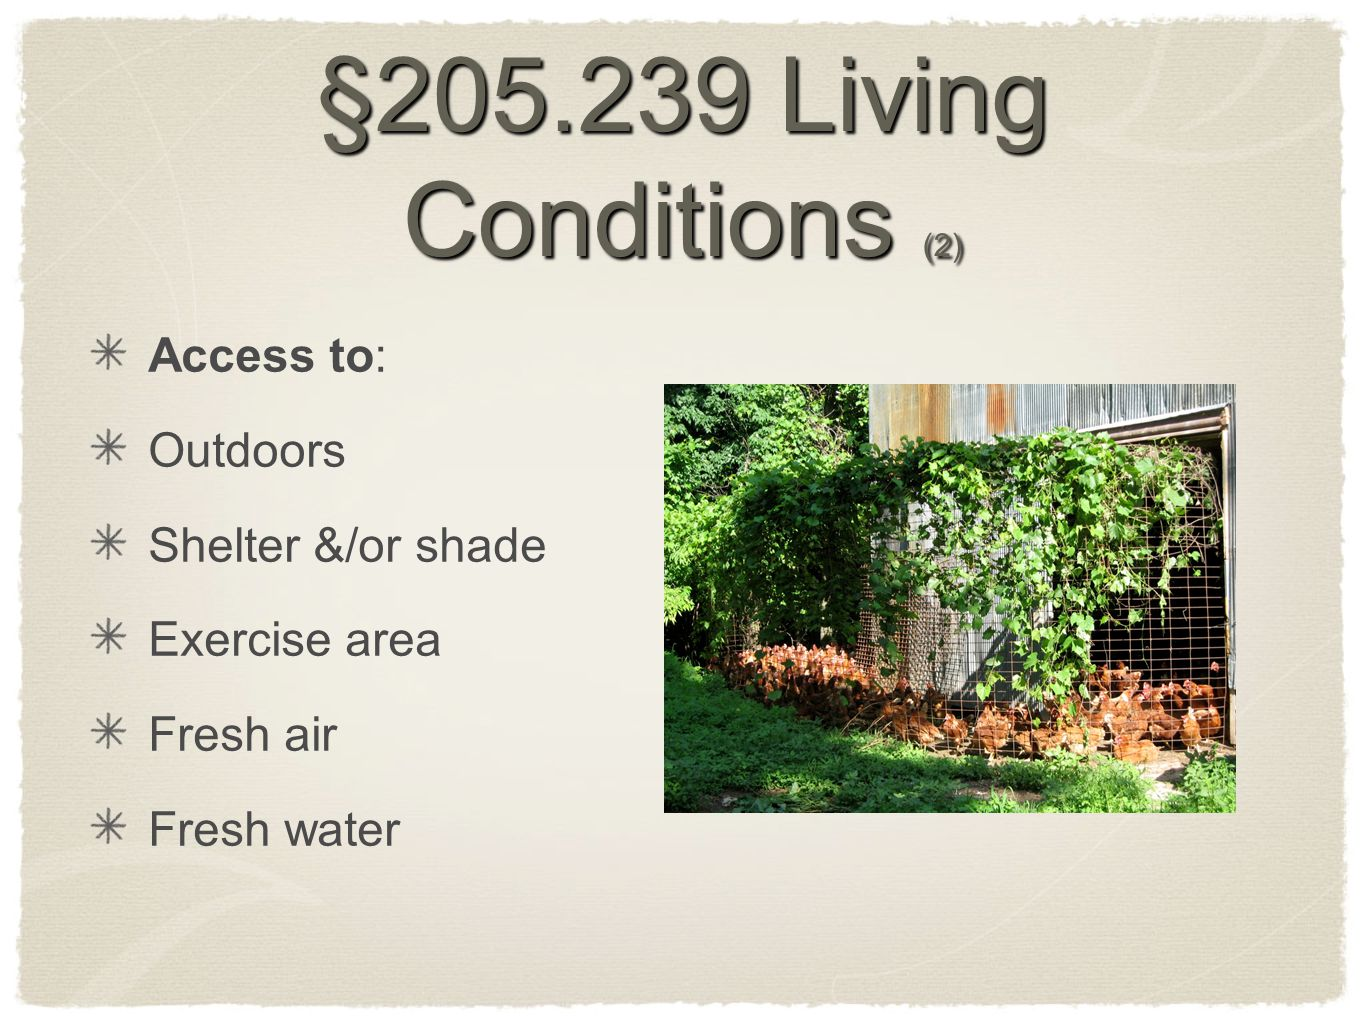 §205.239 Living Conditions (2) Access to: Outdoors Shelter &/or shade Exercise area Fresh air Fresh water